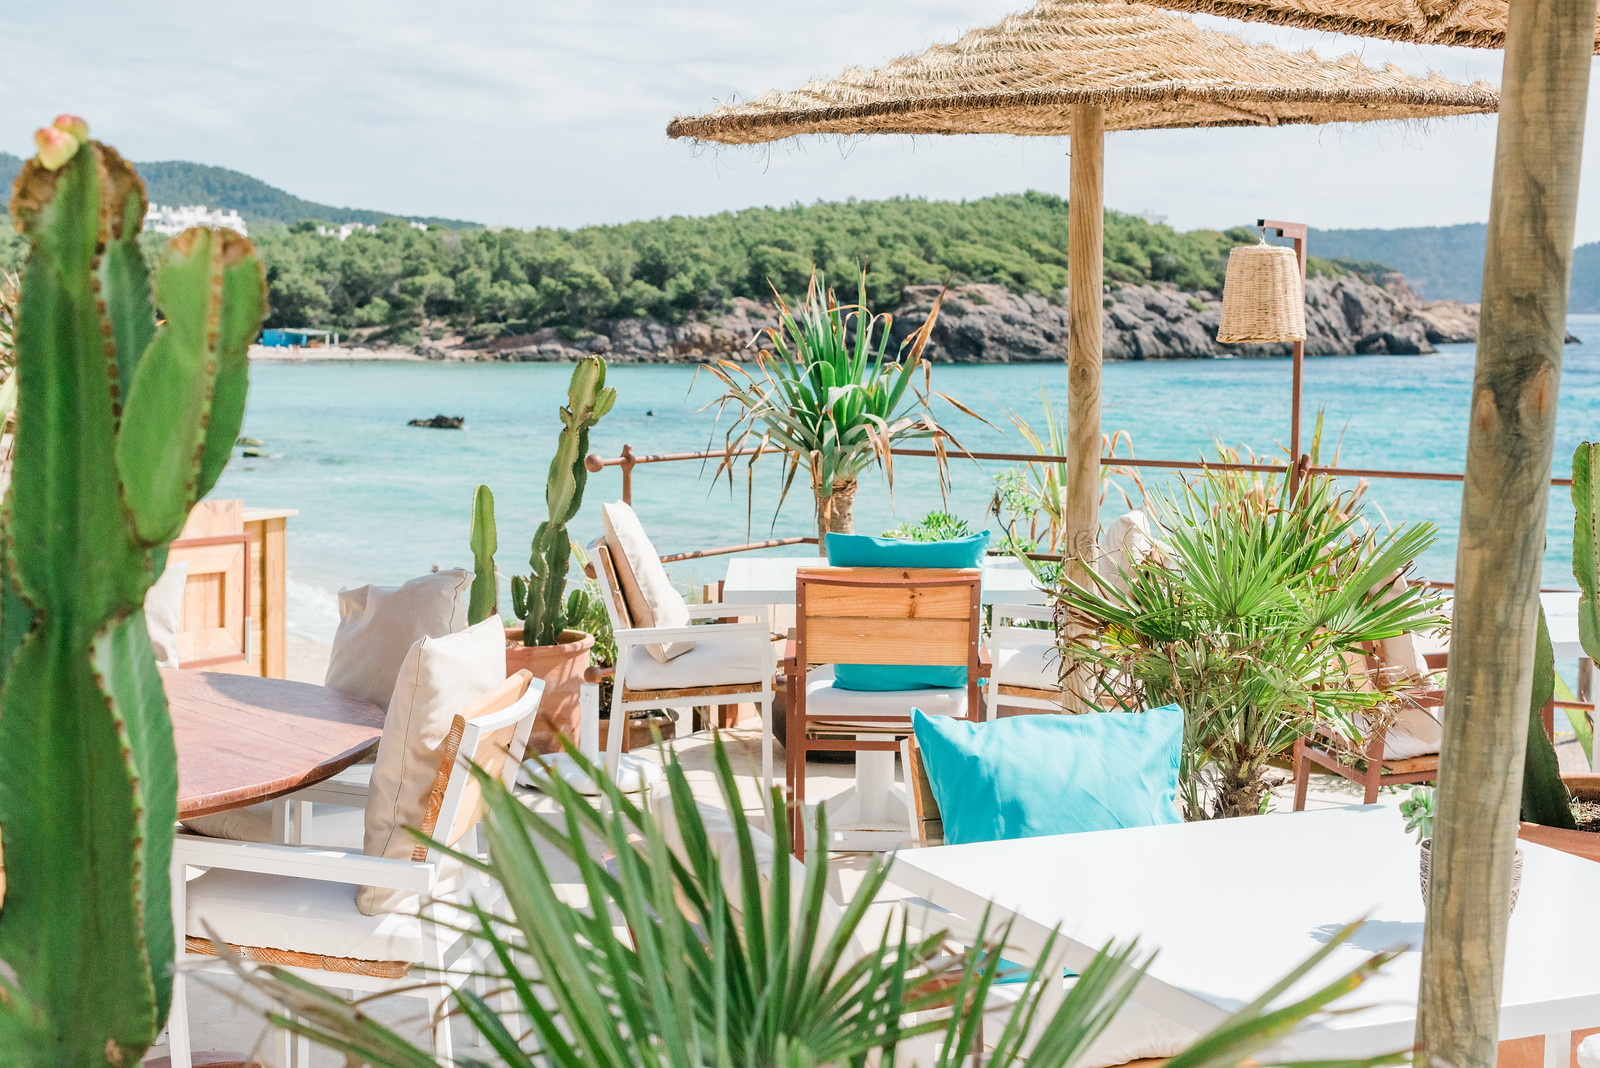 https://www.white-ibiza.com/wp-content/uploads/2020/03/ibiza-beach-restaurants-atzaro-beach-2019-01.jpg